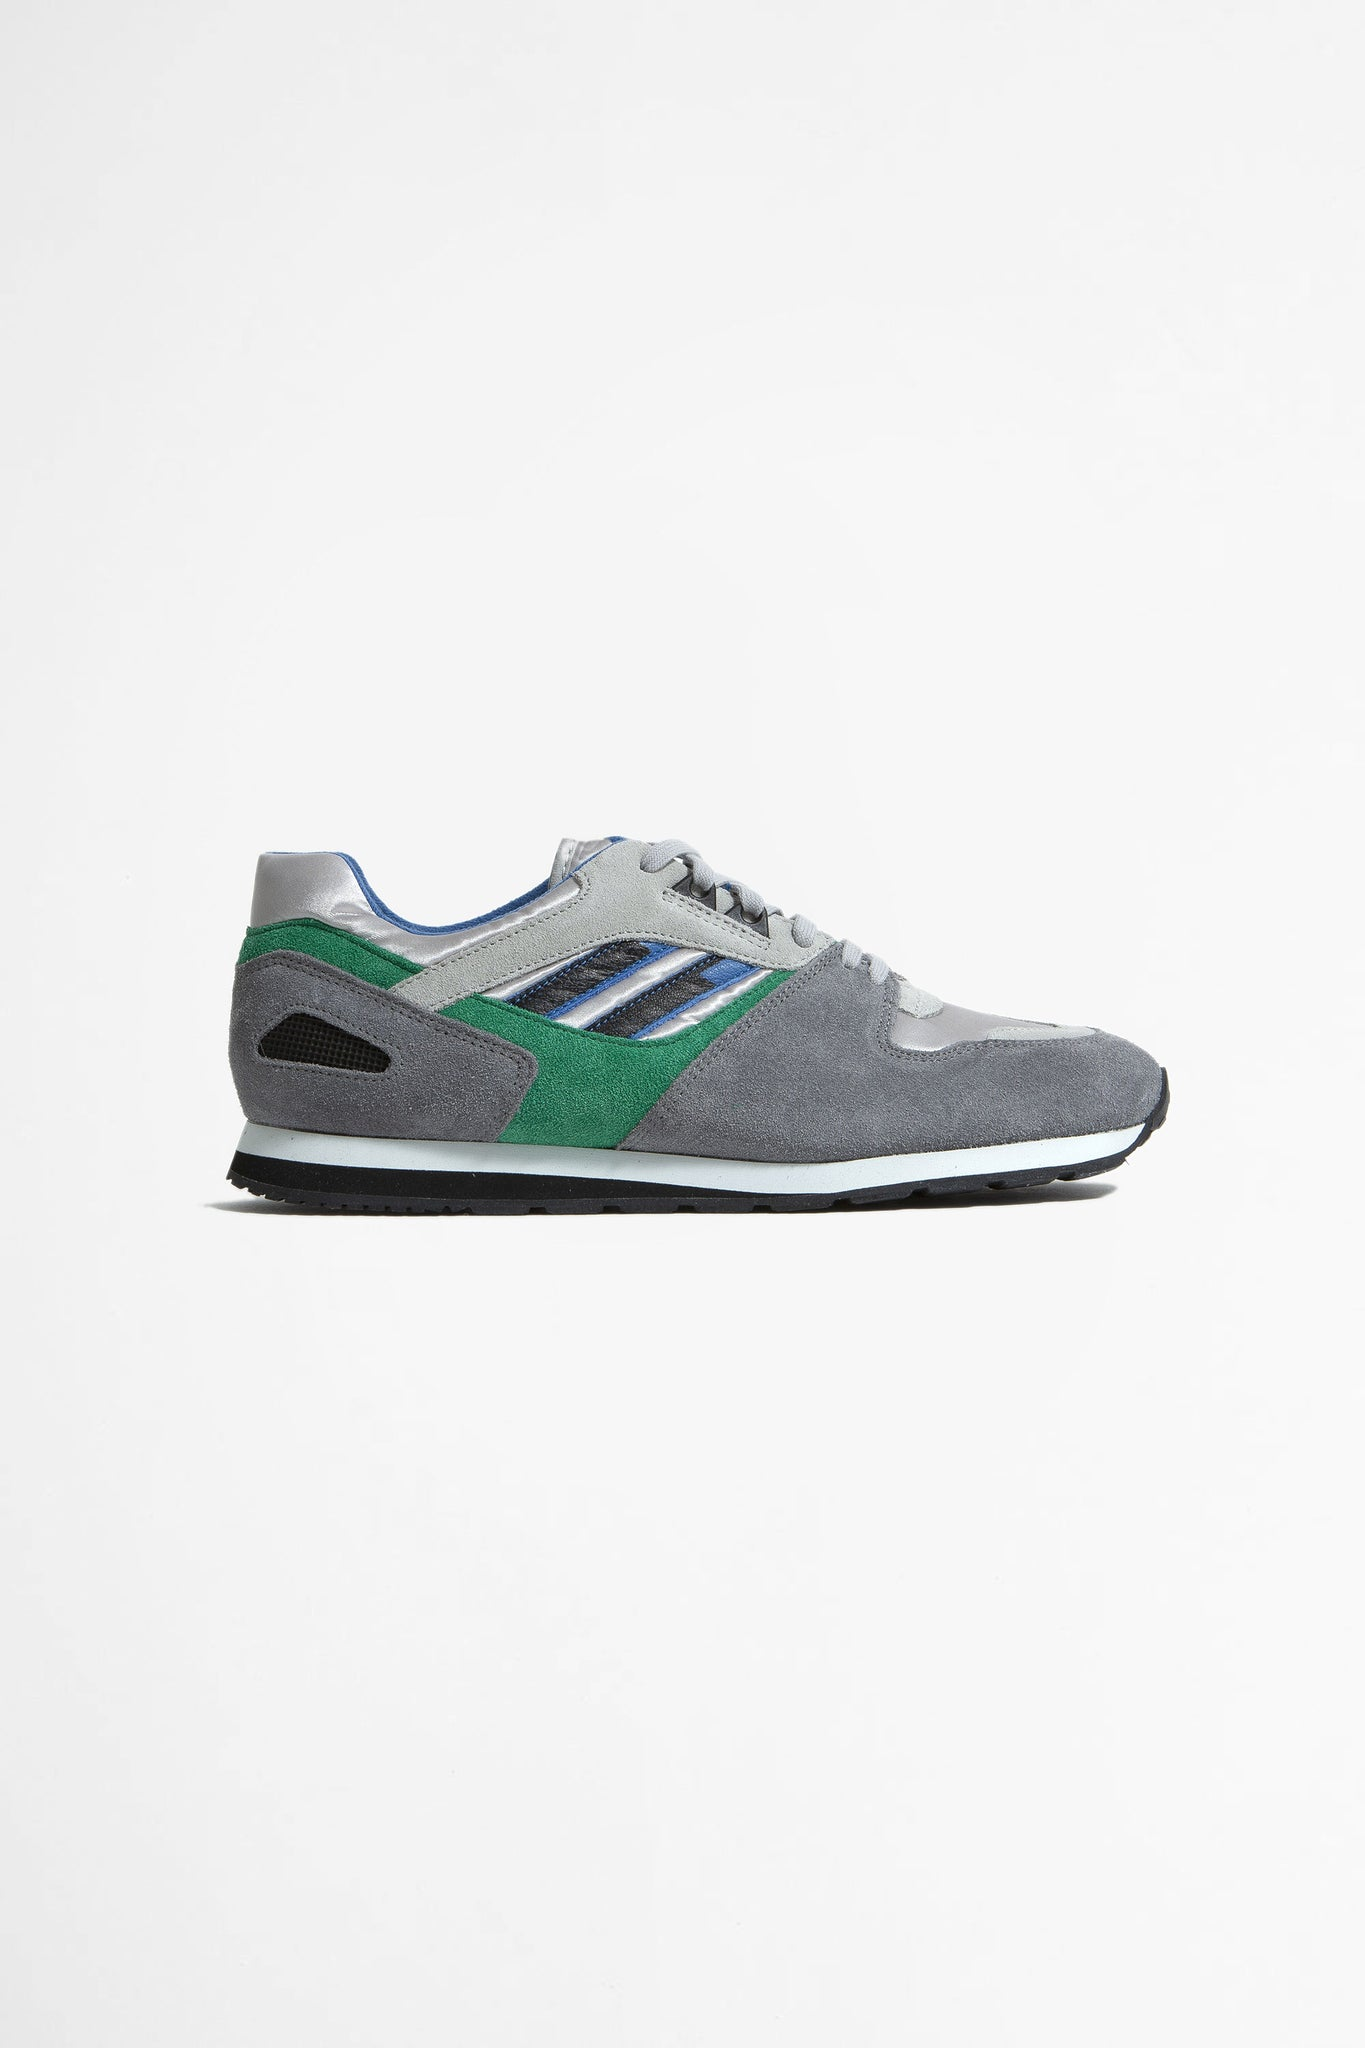 Austrian military trainer light gray/green/gray